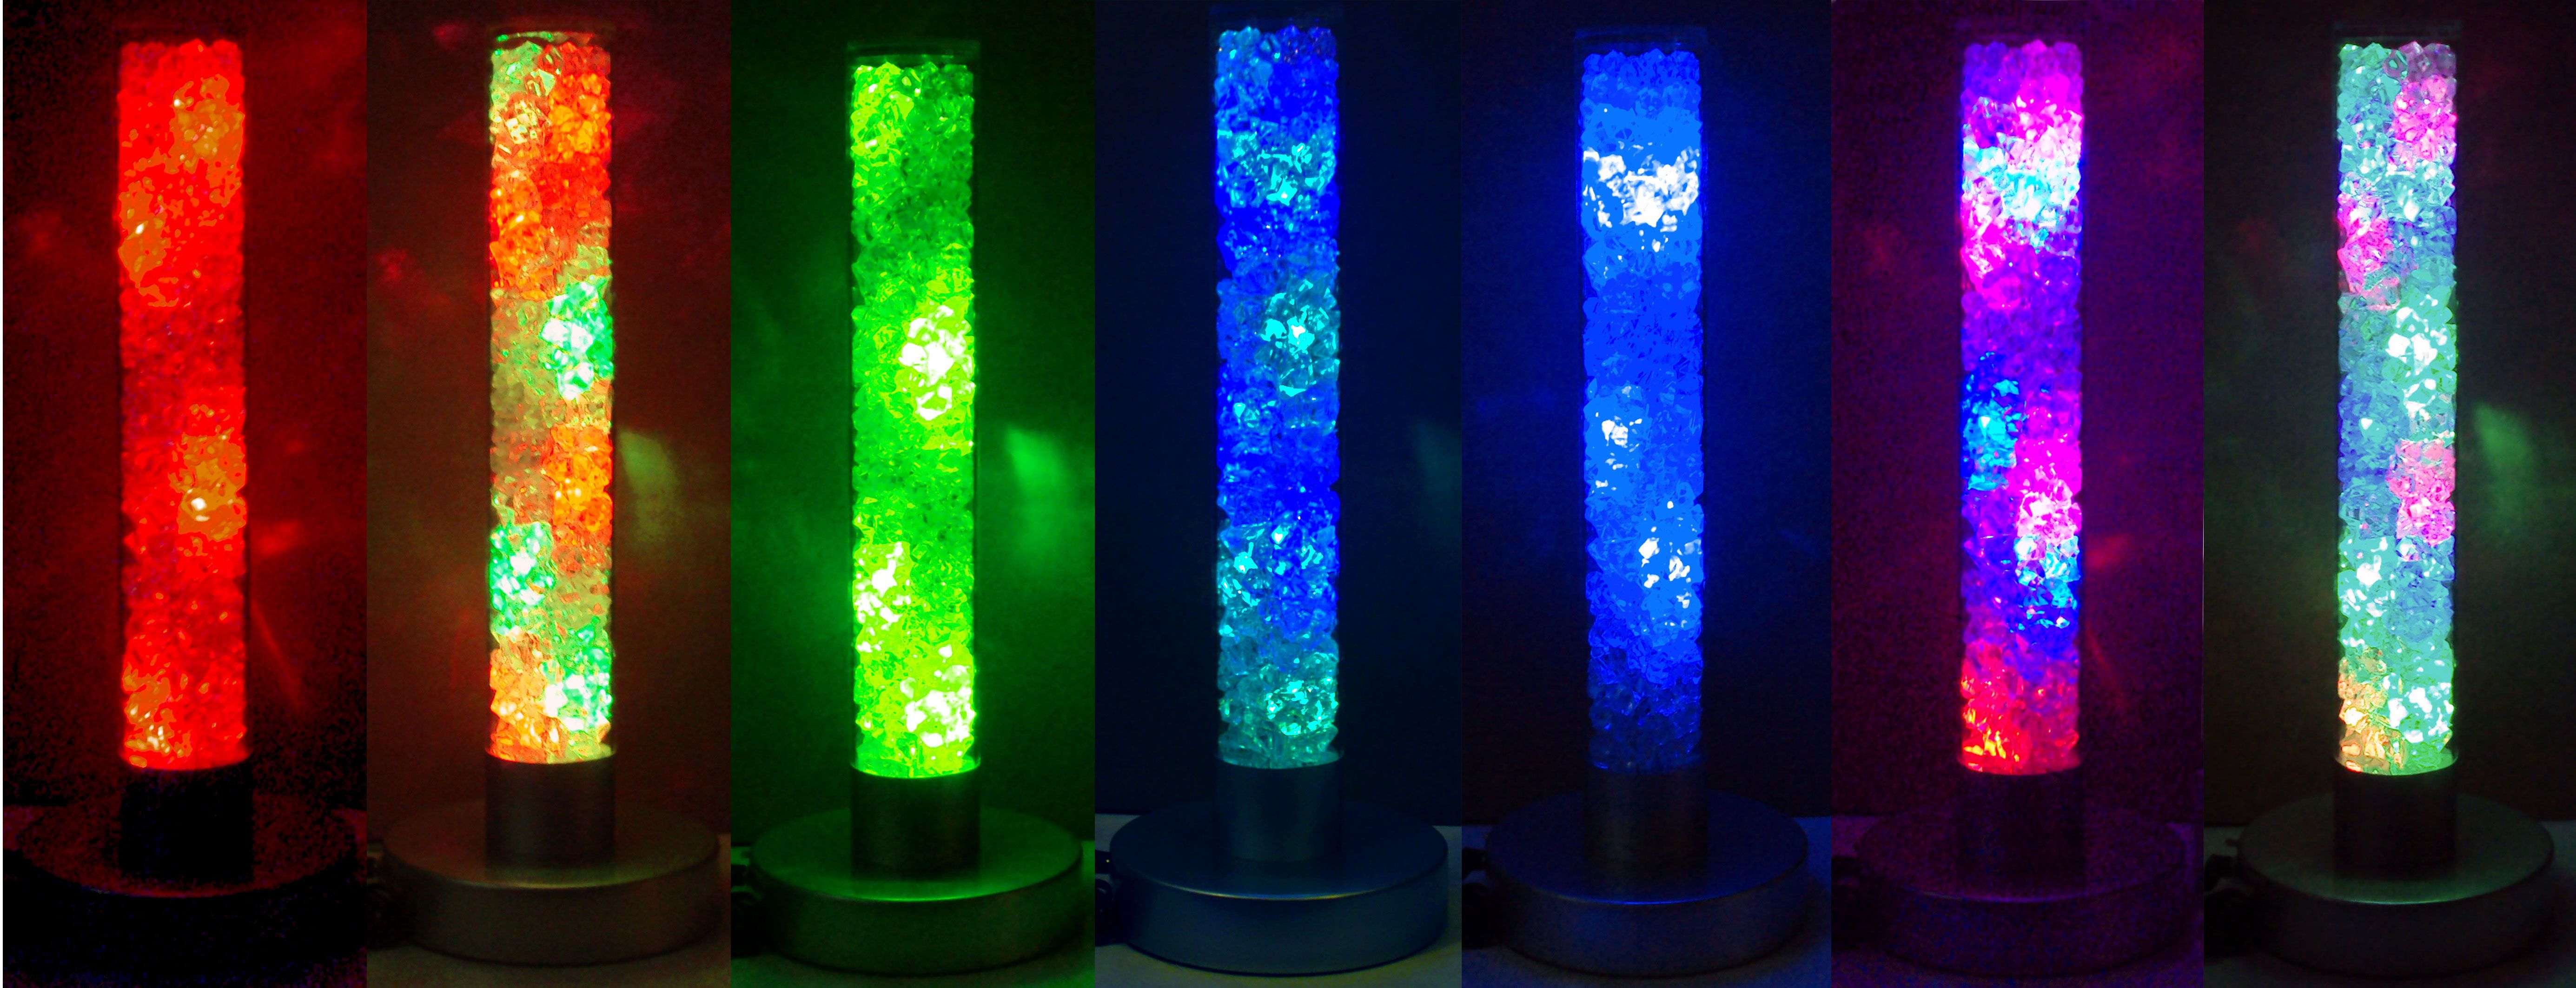 Color Changing And White Light Radiance Lamp The Colors The Led